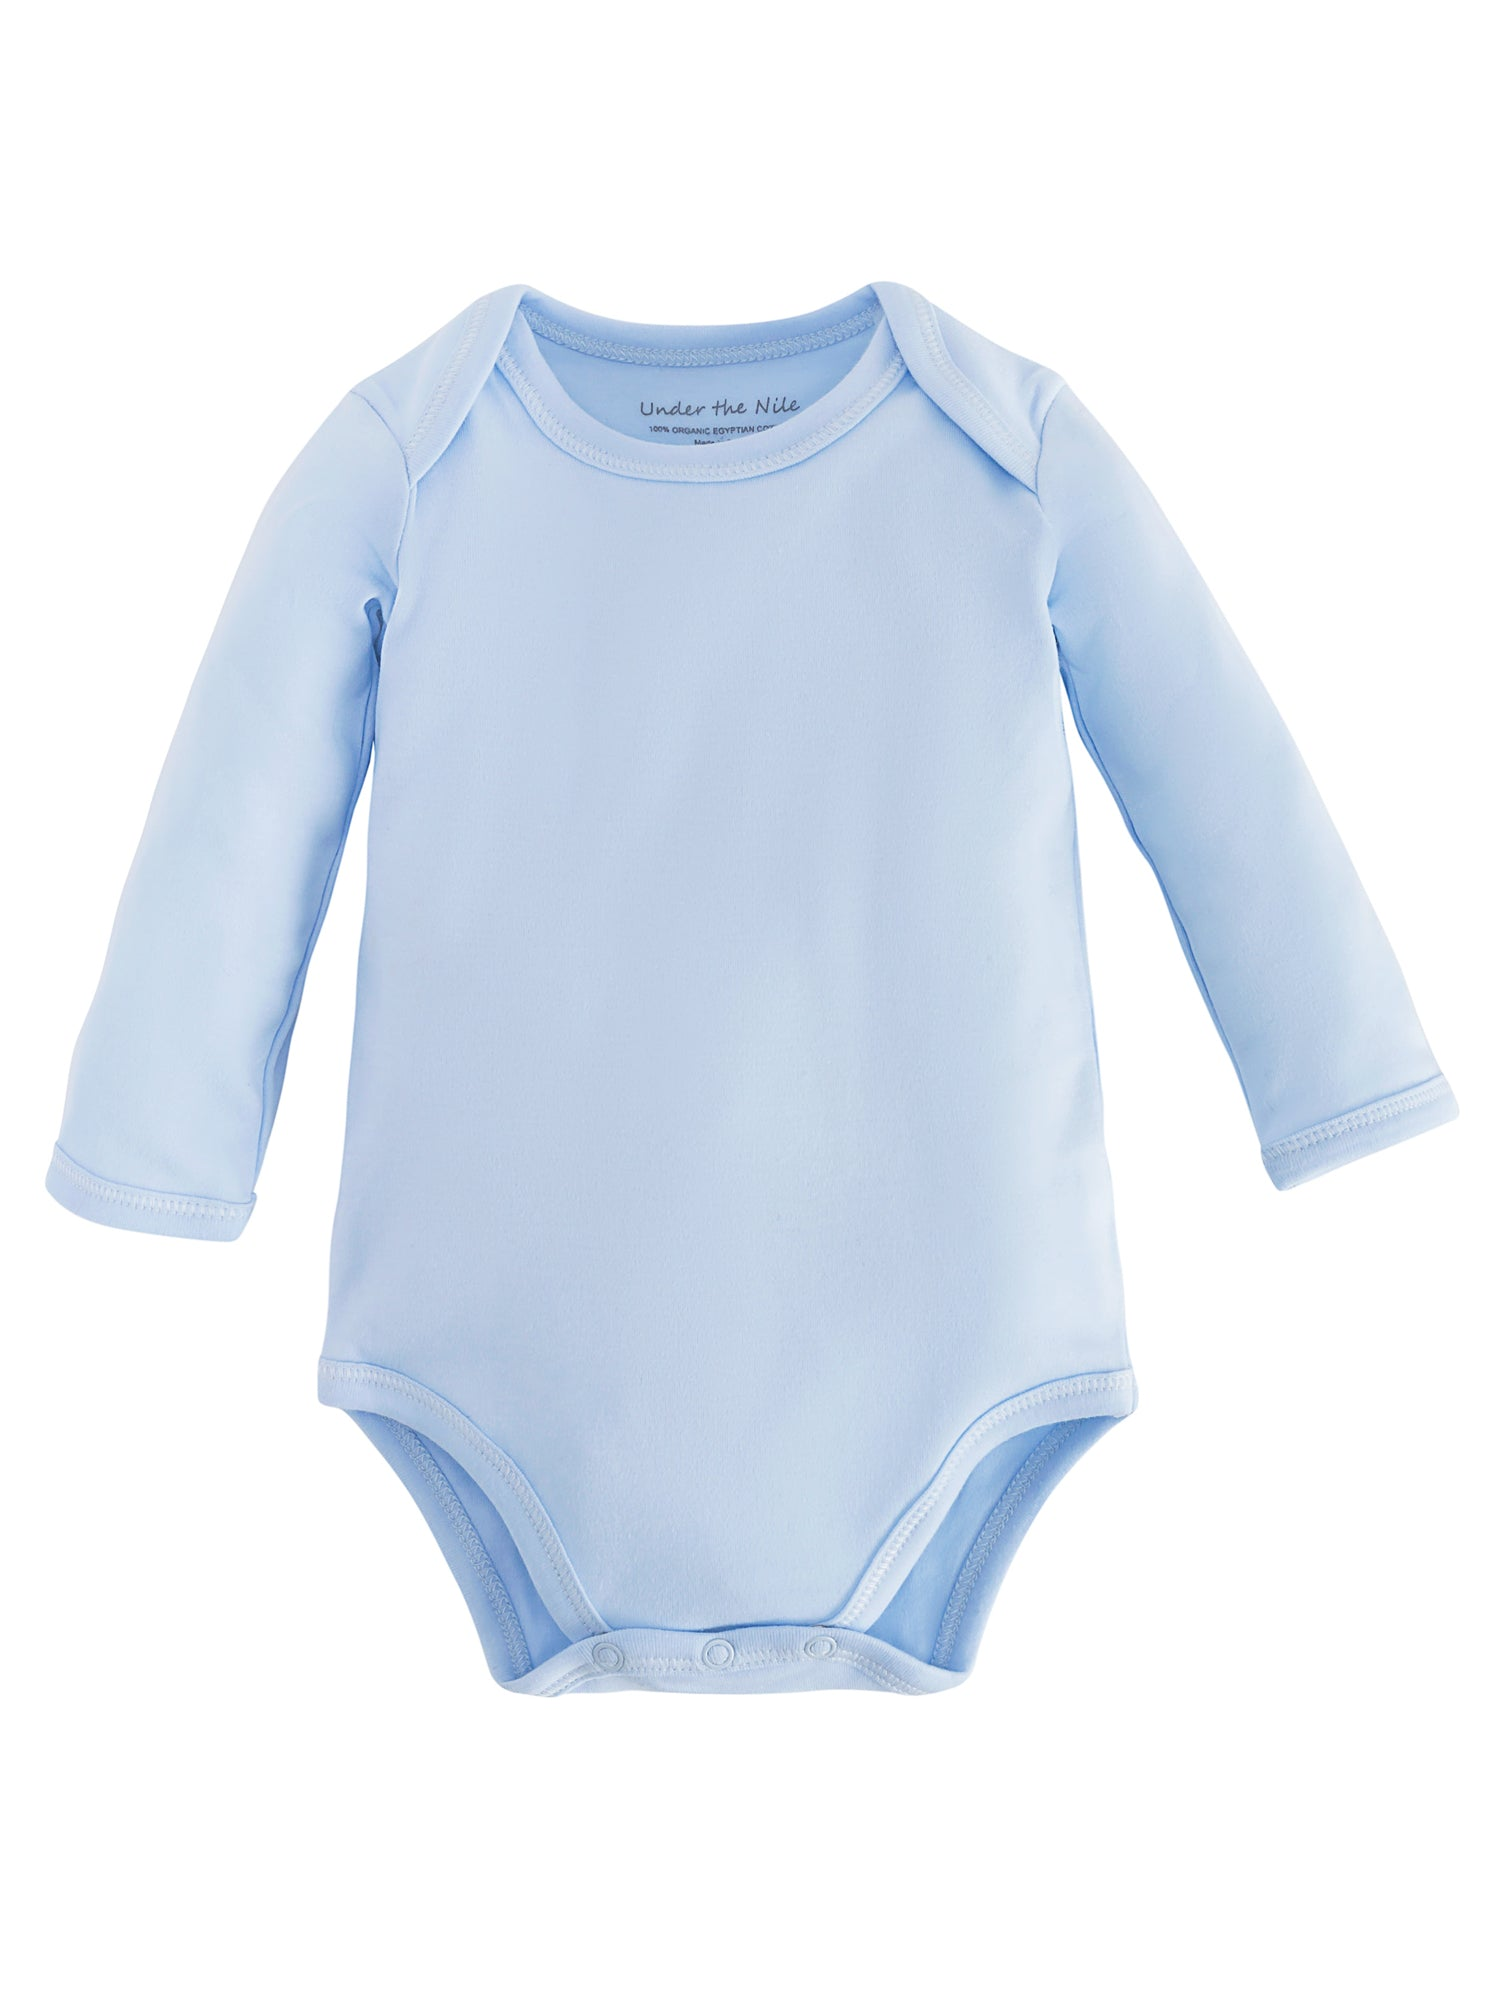 86046f552a Organic Cotton Baby Long Sleeve Bodysuit - Blue – Under the Nile